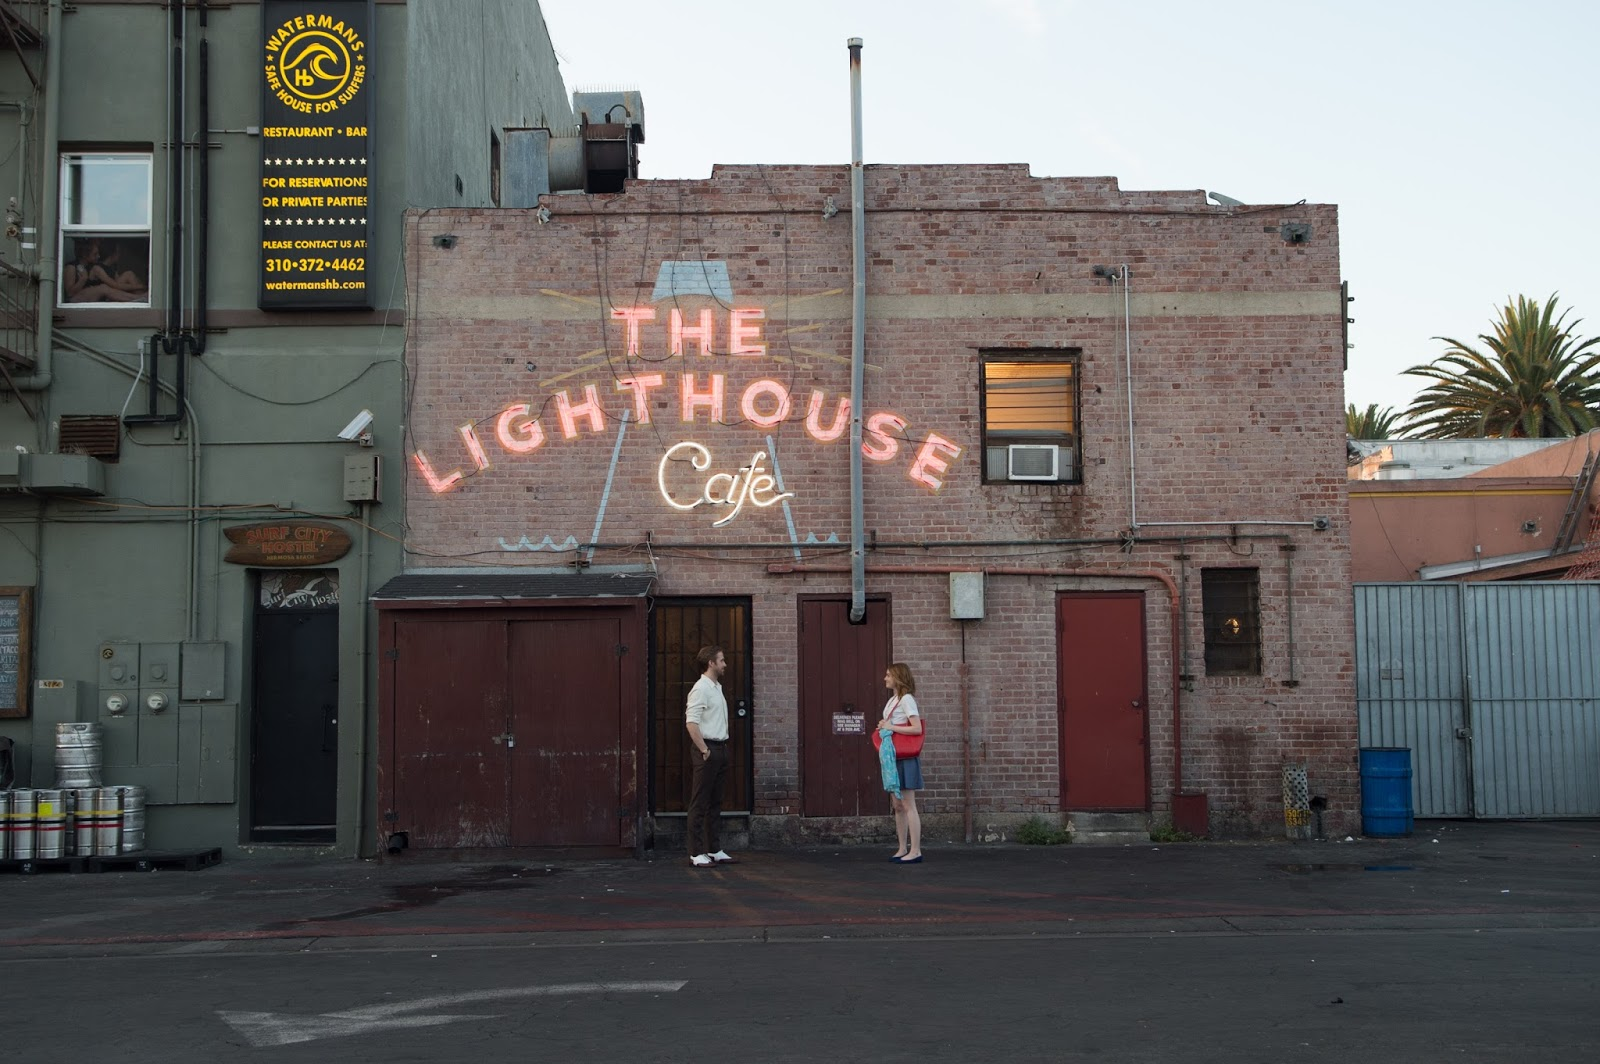 The lighthouse Café - LaLaland